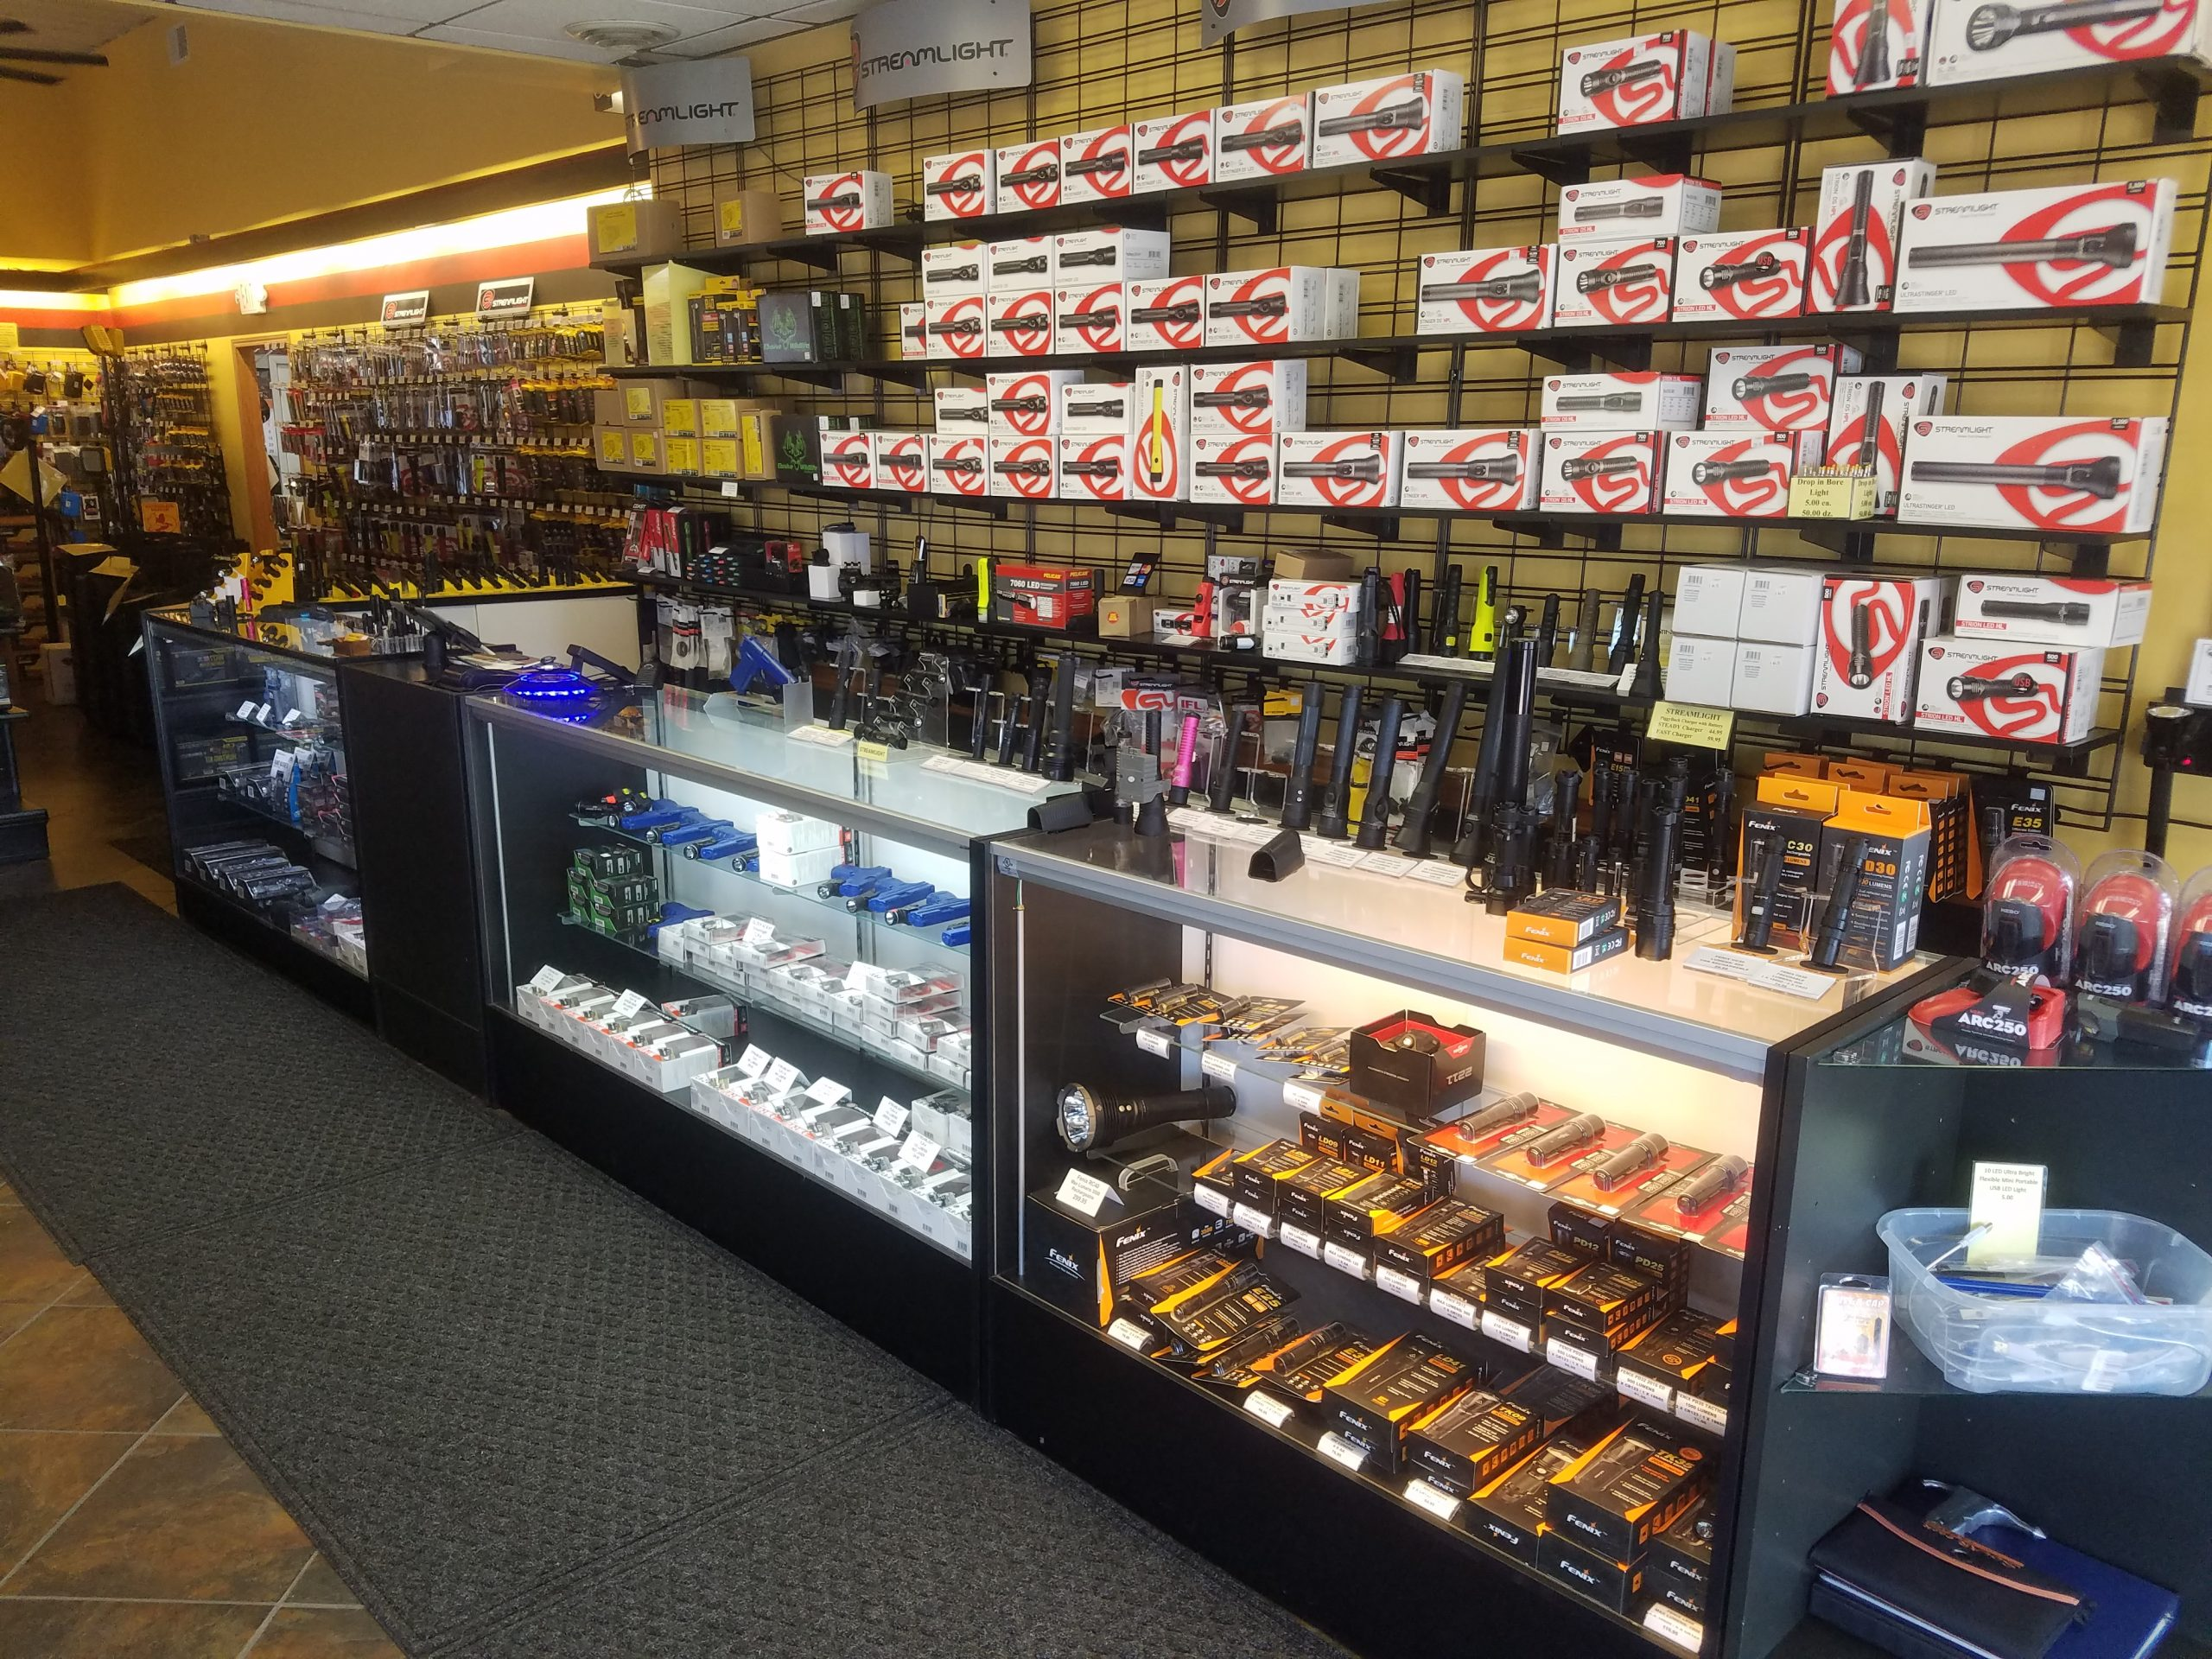 Flashlight Outlet is an authorized distributor of Streamlight, Nitecore, Pelican, and Fenix LED flashlights In Valparaiso, IN